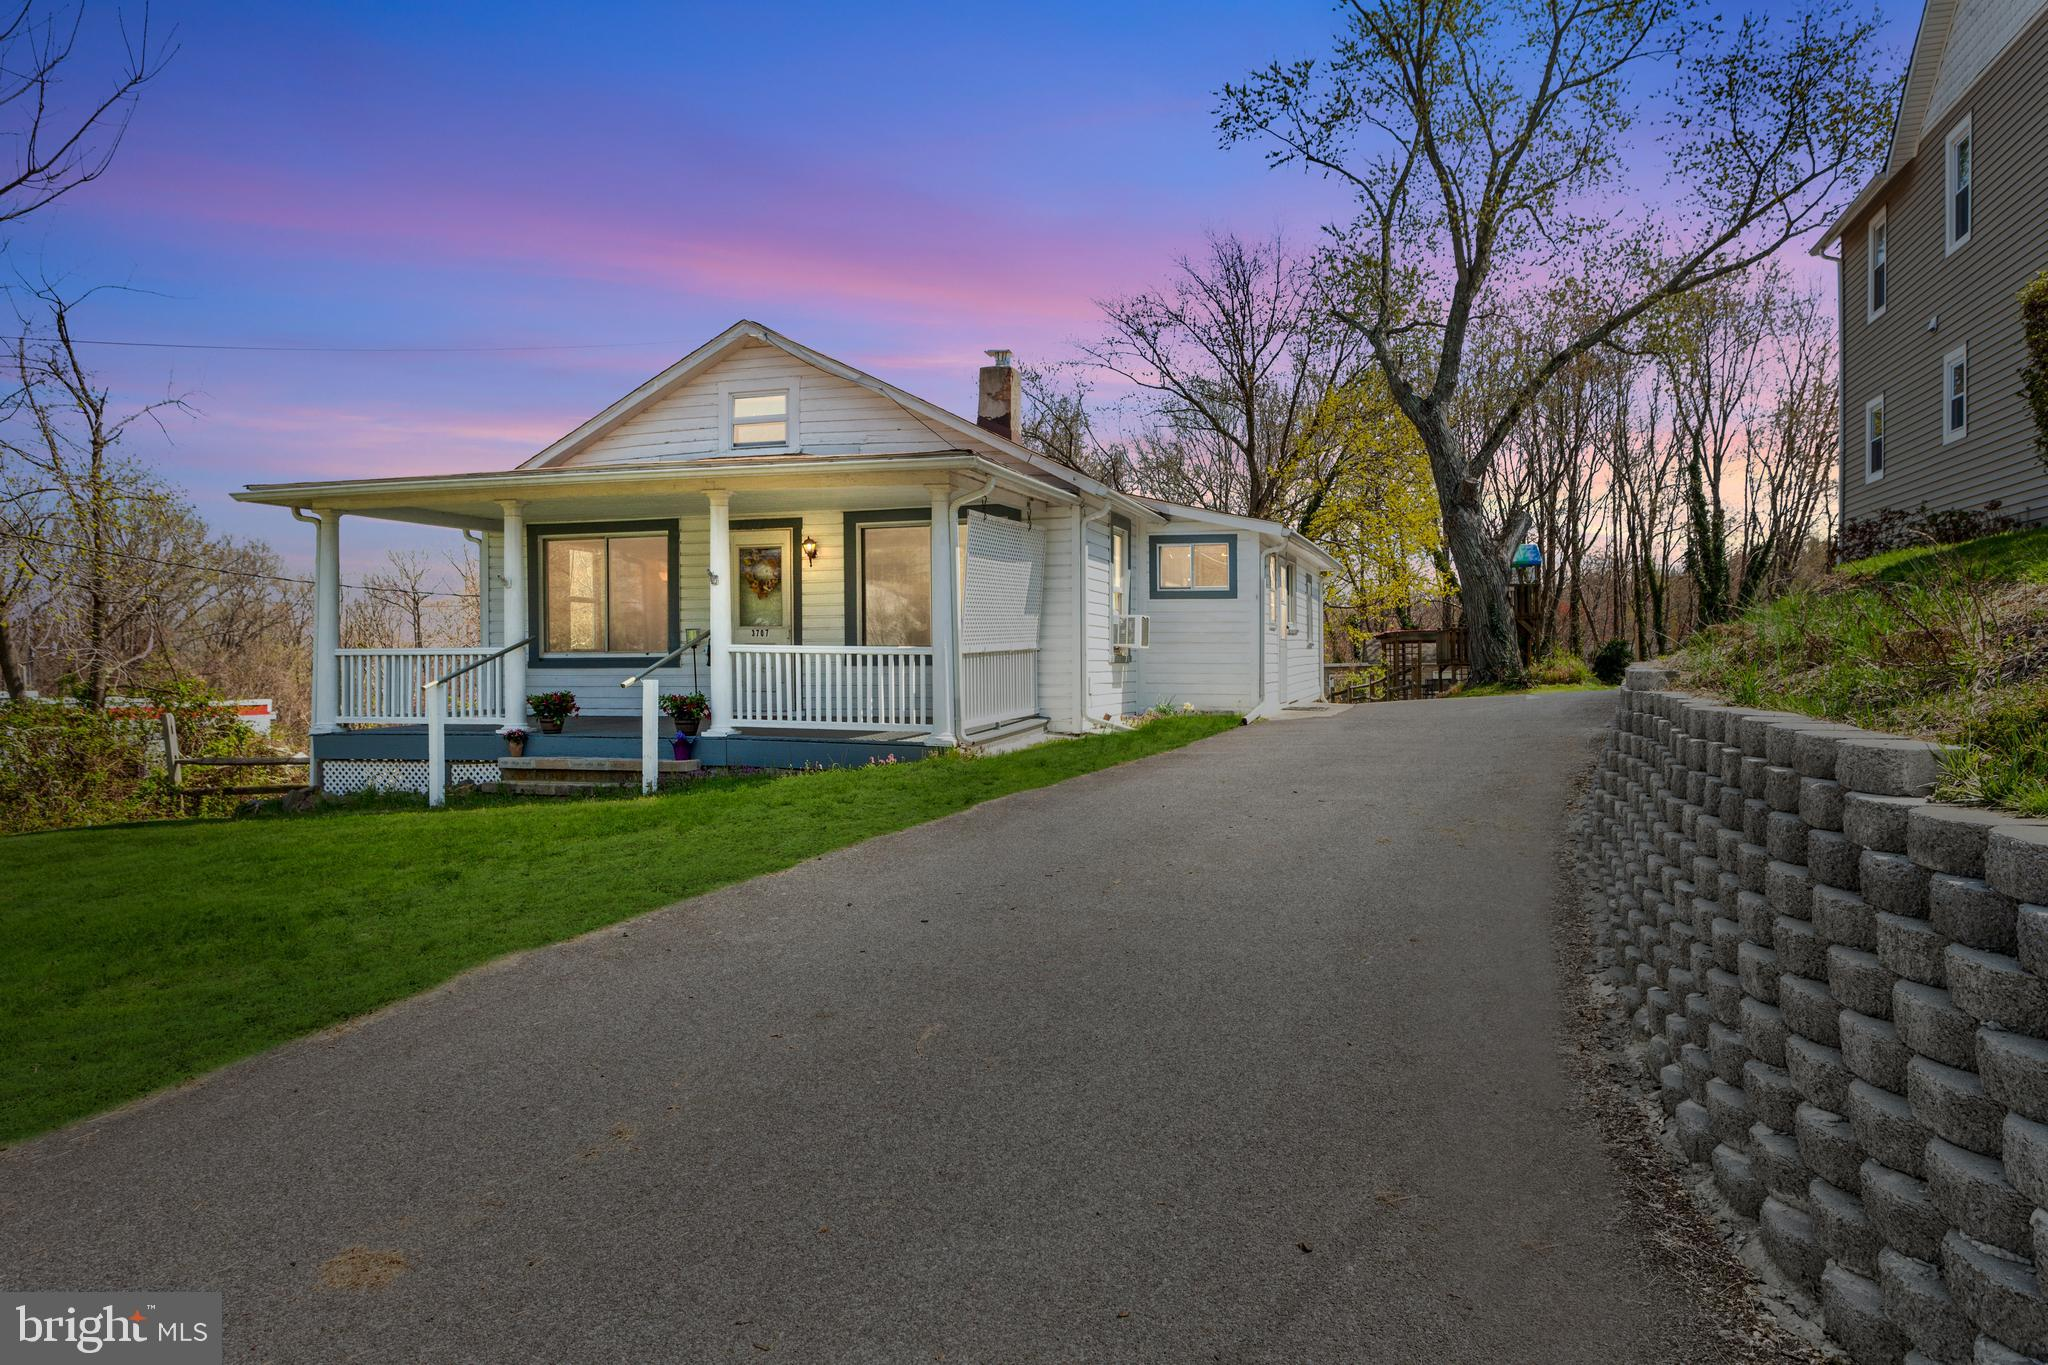 Conveniently located 3 Bedroom, 1 Bath ranch home with basement & garage & nice private yard behind